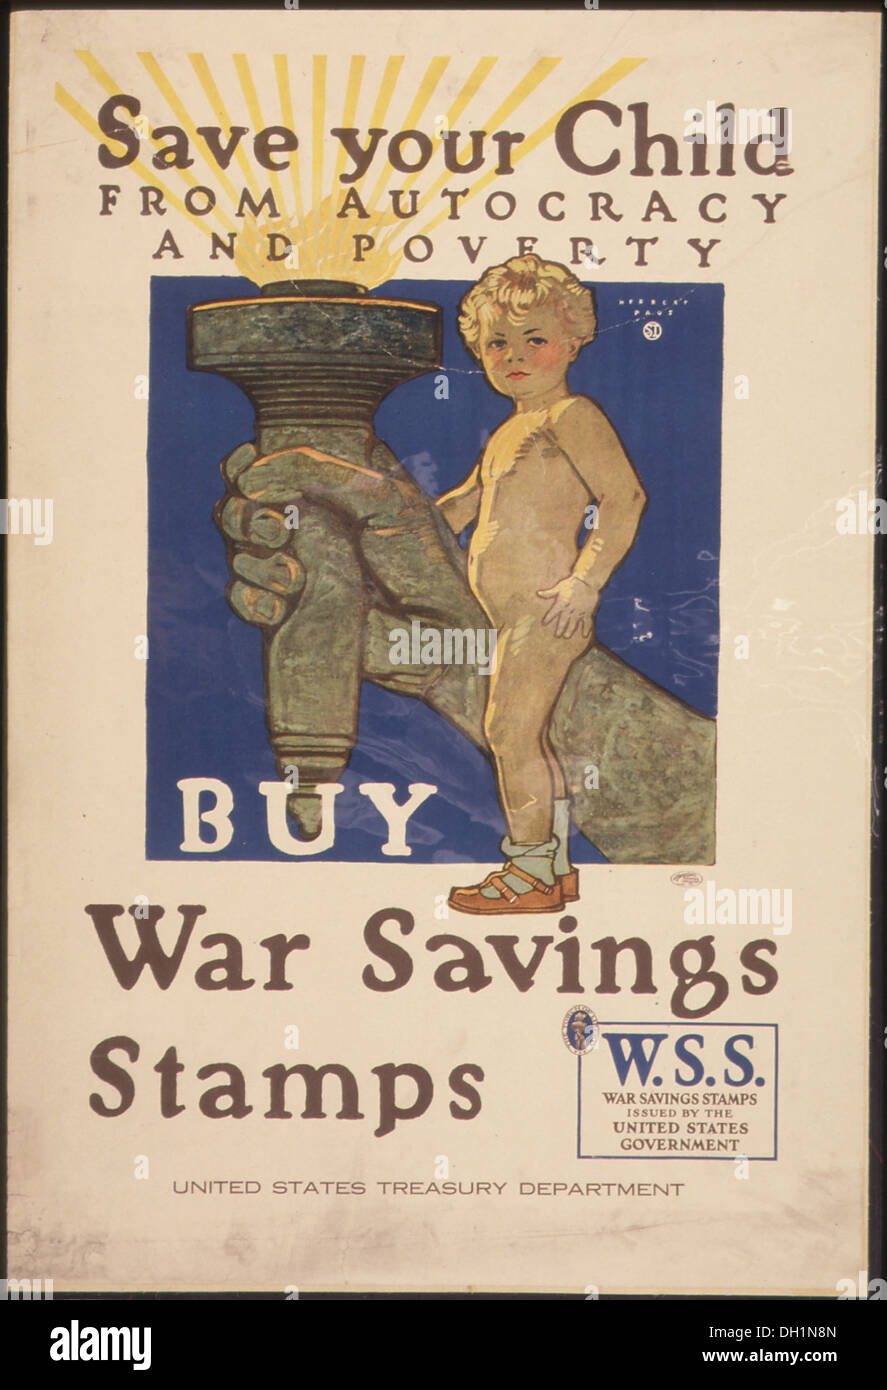 Save Your Child from autocracy and poverty. Buy War Saving Stamps. W.S.S. War Saving Stamps issued by the United... 512628 - Stock Image